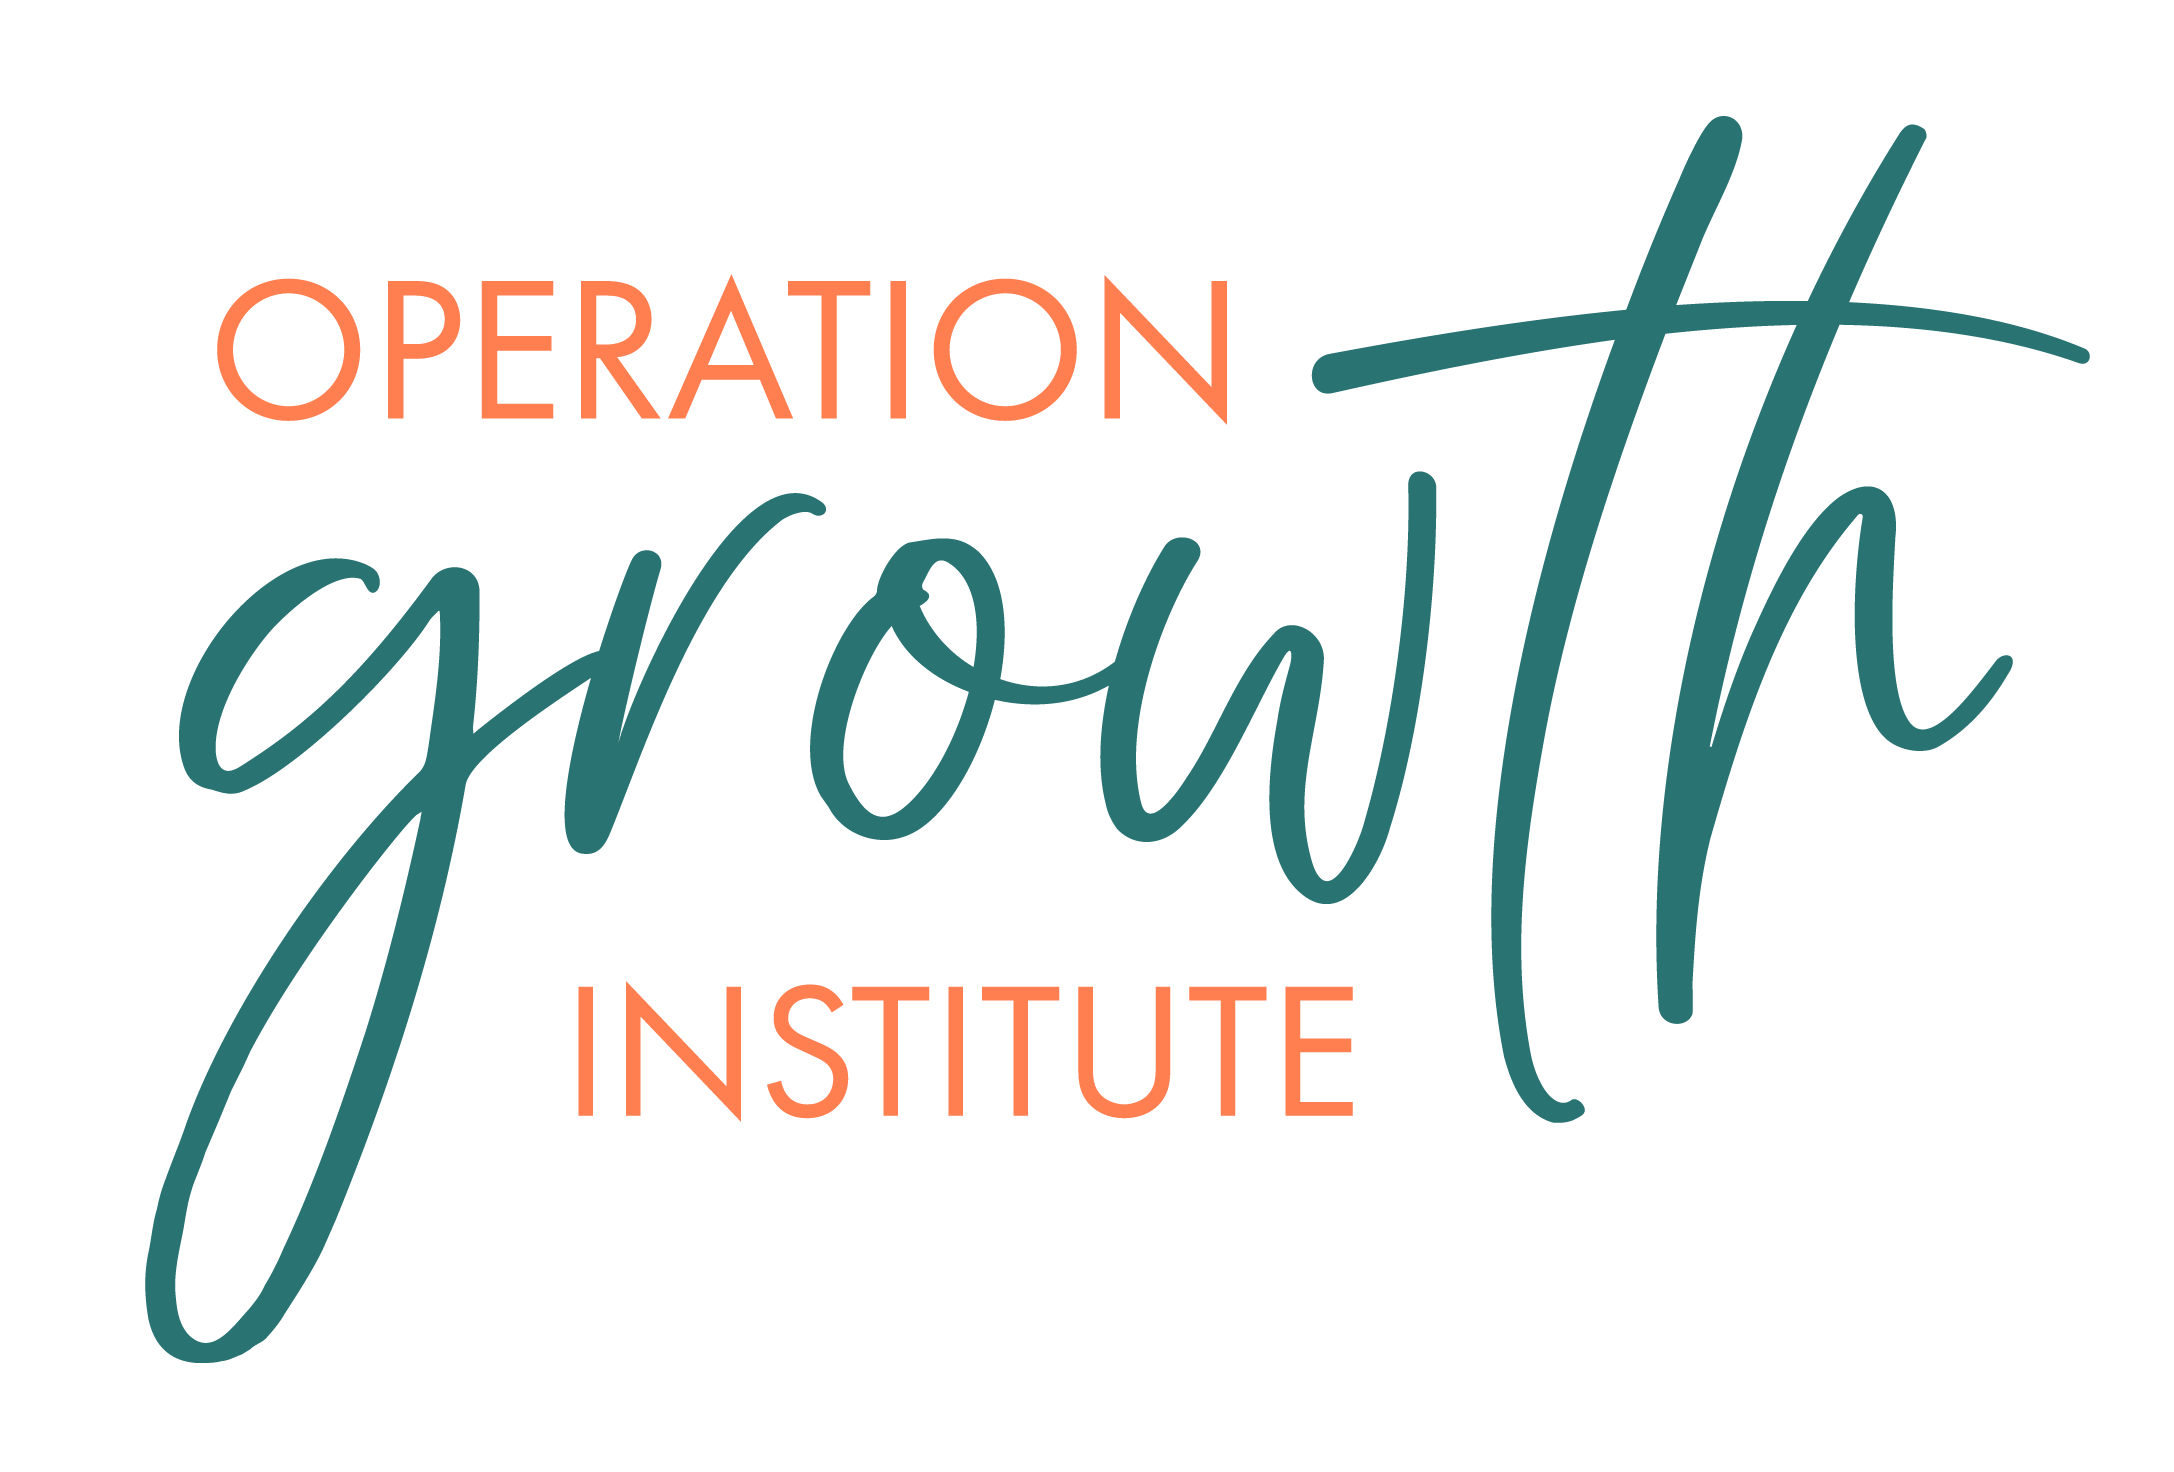 Operation Growth Institute